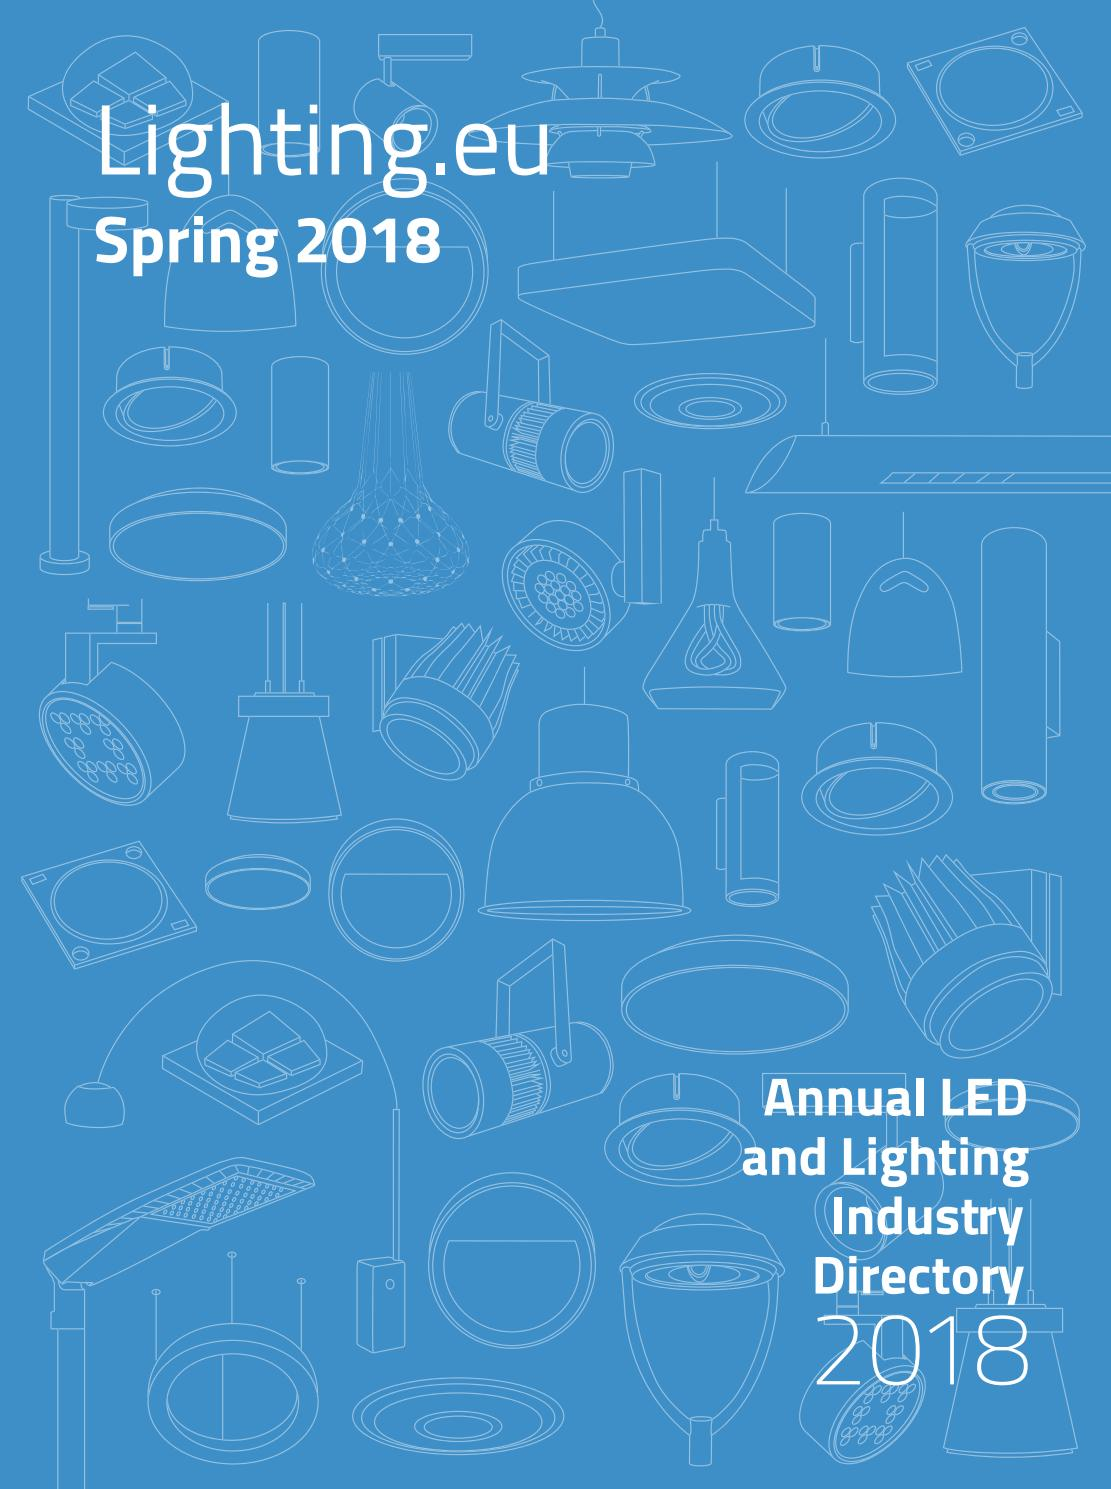 Lichtland Essen Lighting Eu Spring 2018 By Lighting Eu Issuu